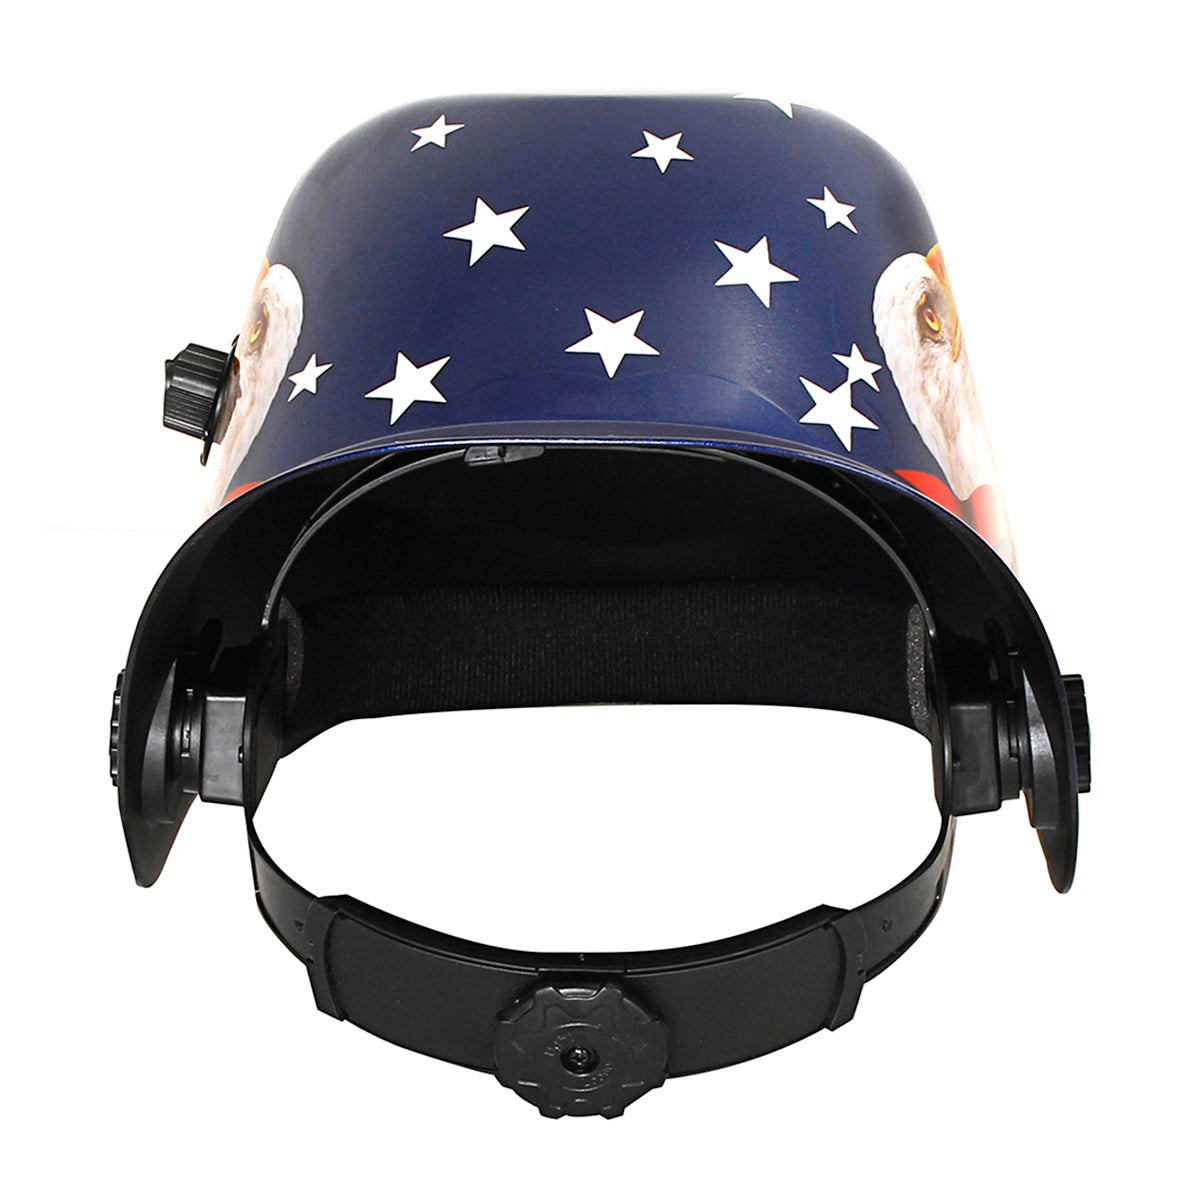 Auto-Dimming Welding Mask | American Eagle Design | DIN 9-13 | Free Shipping